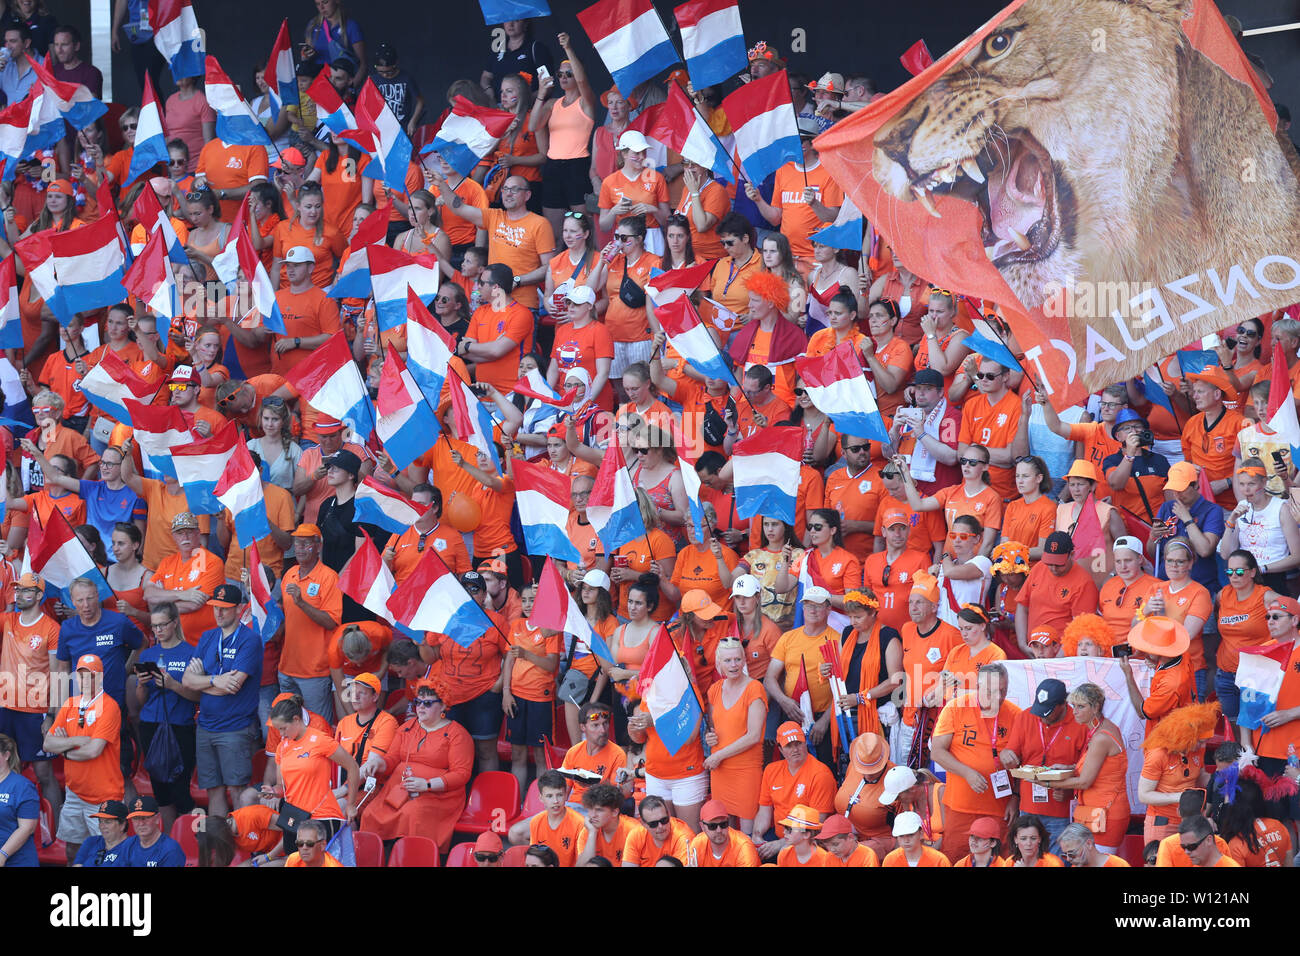 Valenciennes, France. 29th June, 2019. Supporters of the Netherlands cheer the team before the quarterfinal between Italy and the Netherlands at the 2019 FIFA Women's World Cup in Valenciennes, France, June 29, 2019. Credit: Cheng Tingting/Xinhua/Alamy Live News Stock Photo